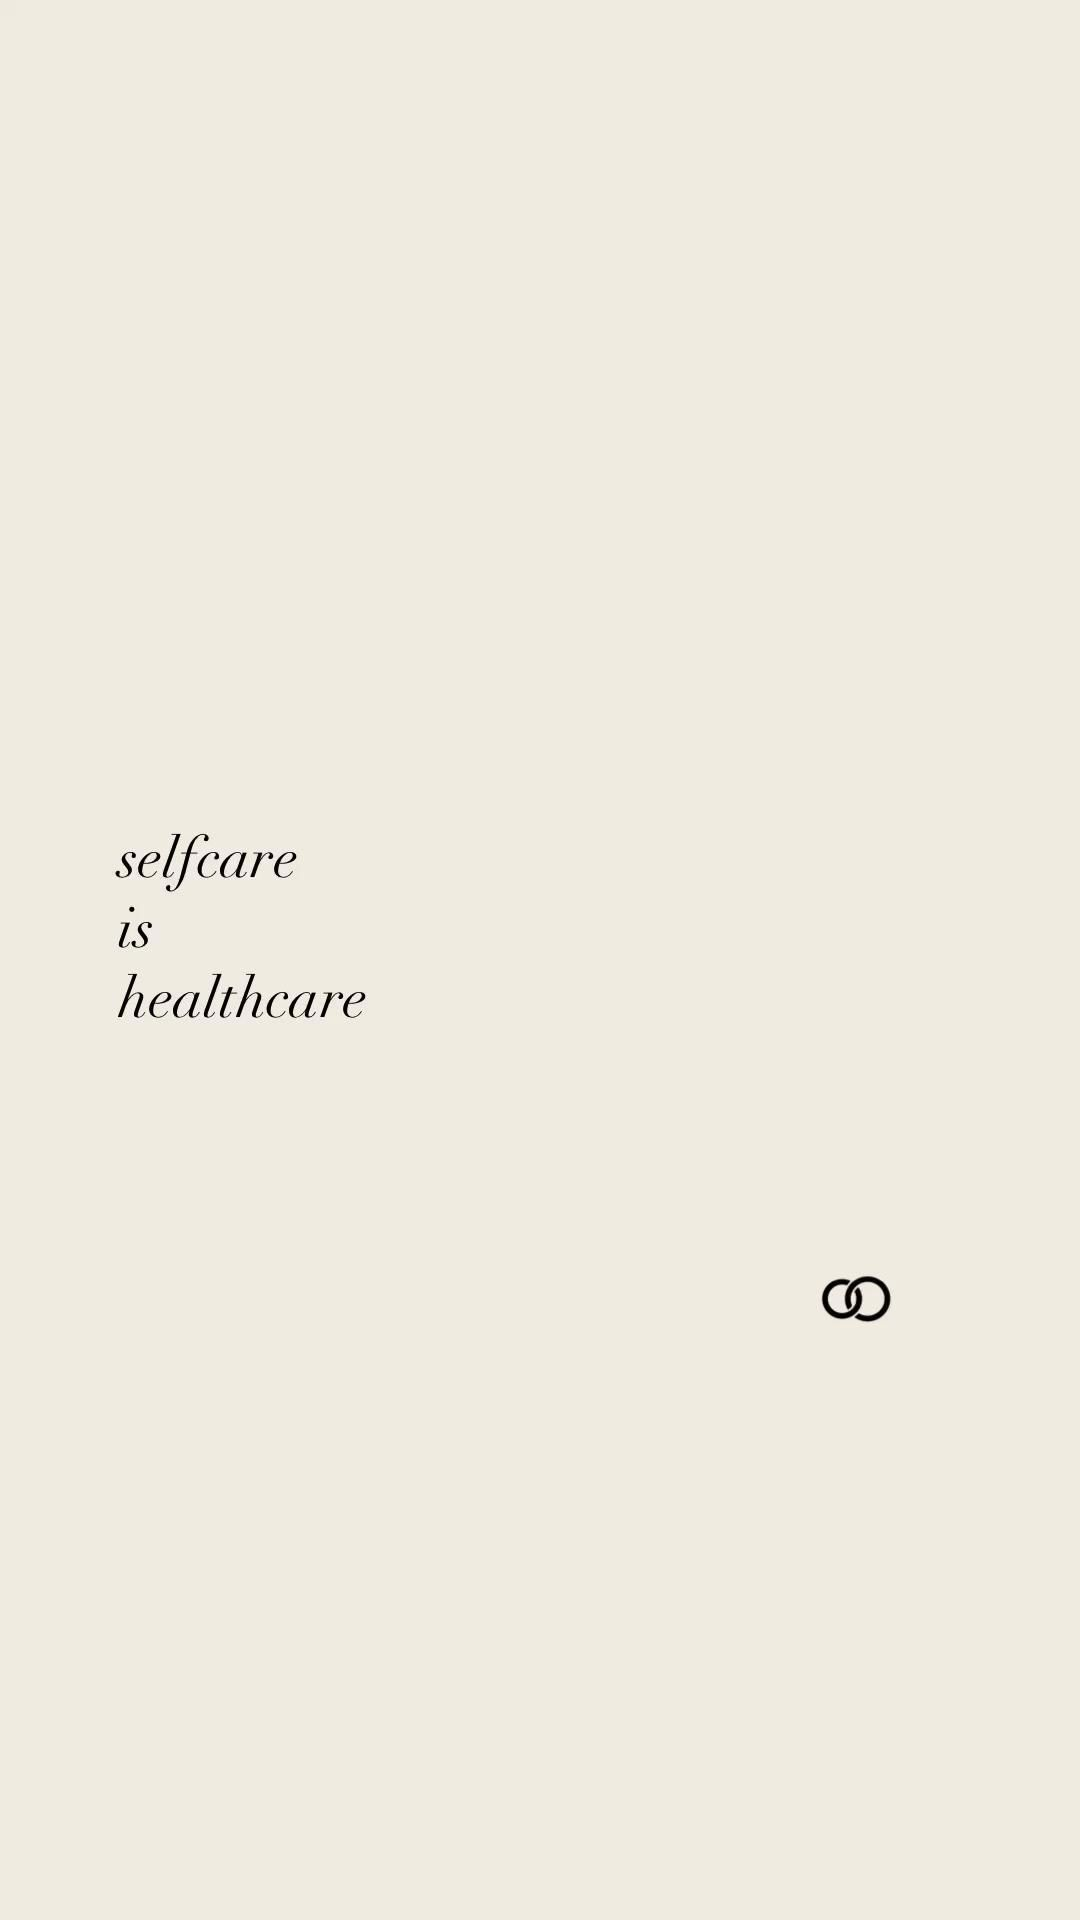 Selfcare is healthcare